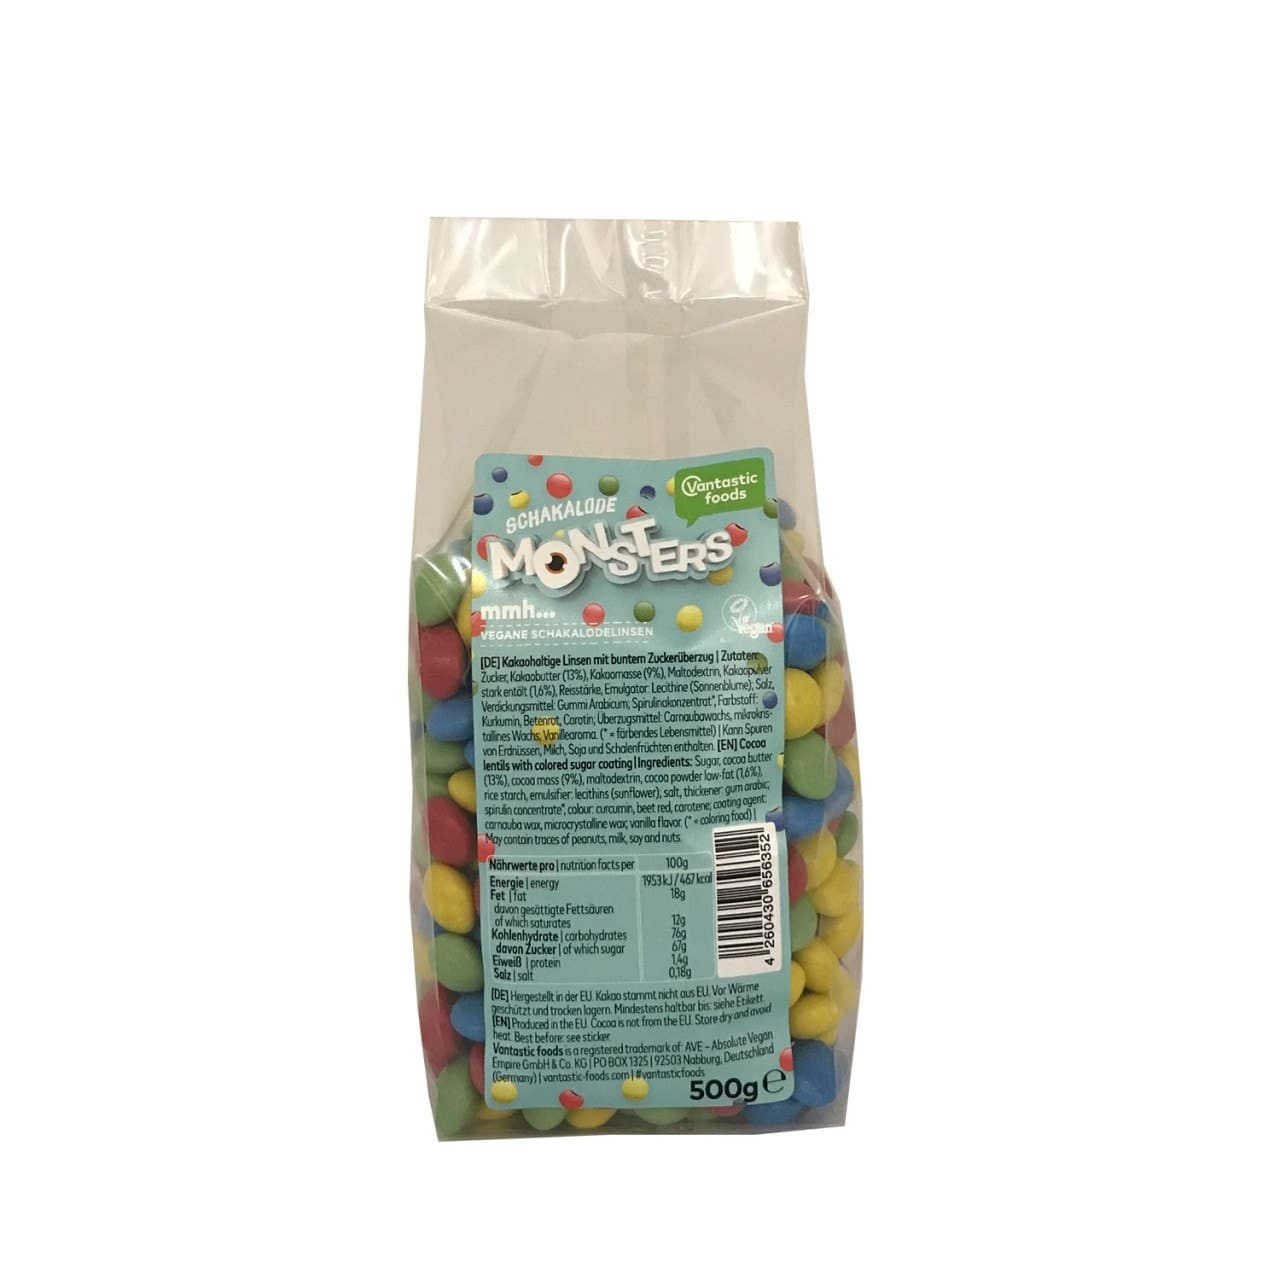 Vantastic foods SCHAKALODE Monsters, Bulk 500g von Vantastic foods